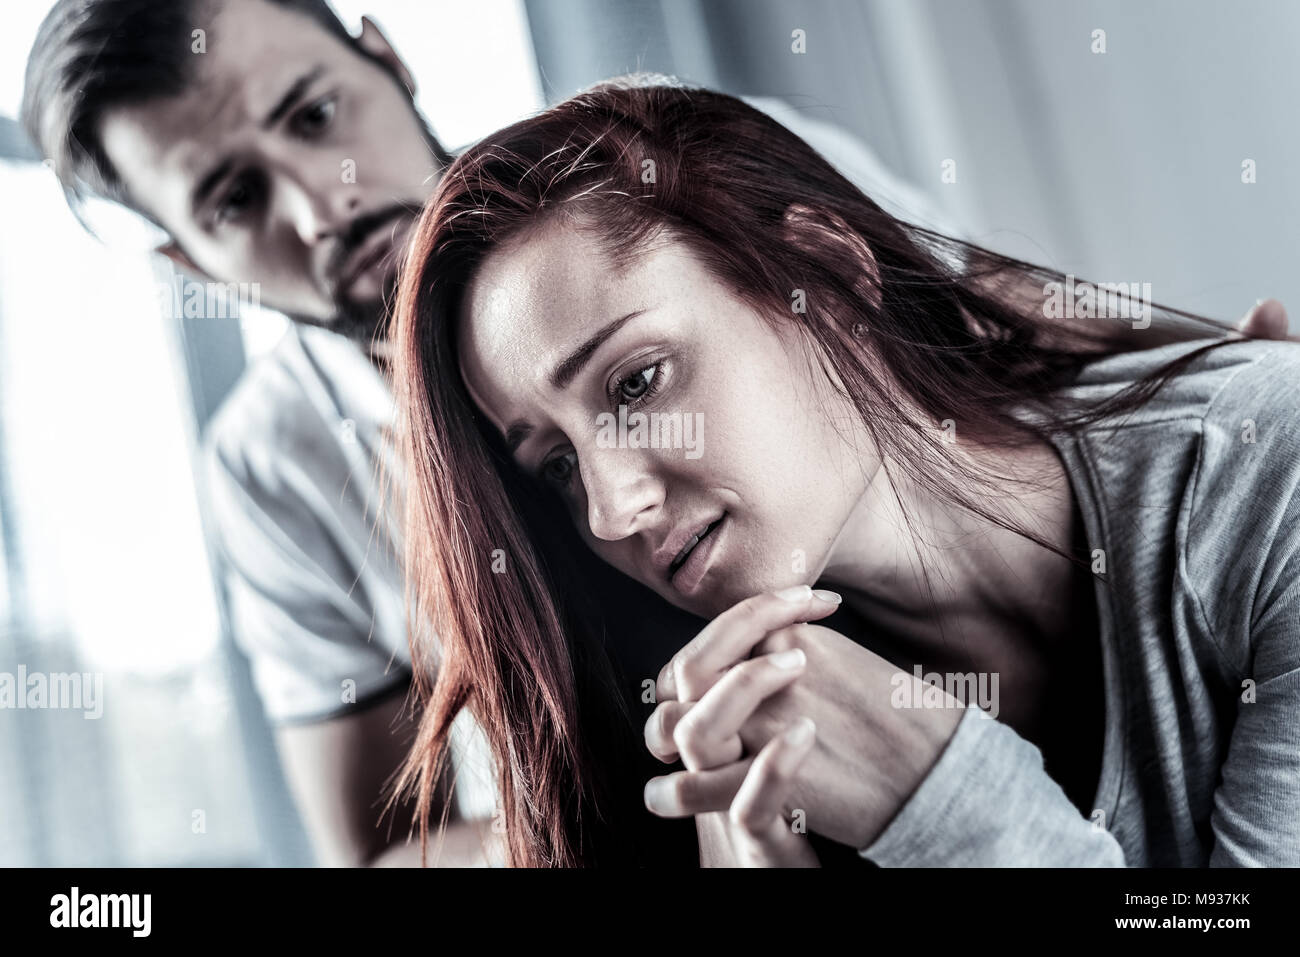 Stressful redhead woman looking down and thinking. - Stock Image